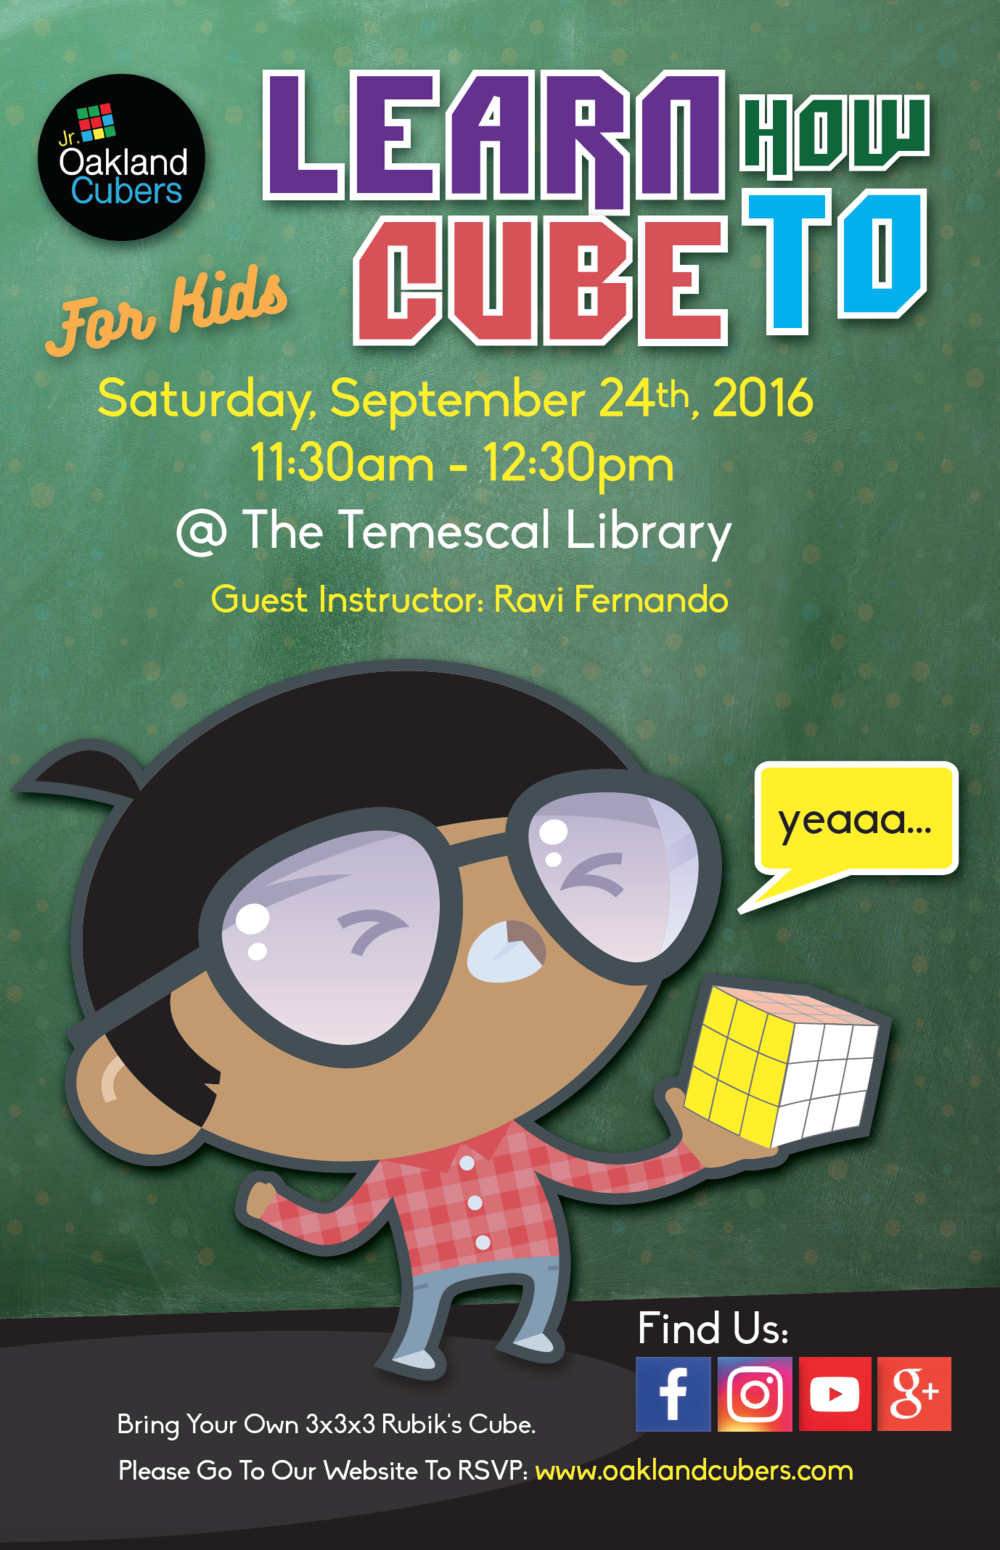 This will be our first class and meet. We are thrilled to have Ravi Fernando be our guest instructor to teach our kids the fundamentals of solving a 3x3x3 cube.   This event is for children only and all children must be with a guardian. Space is limited, so please RSVP for this event. If you have a cube, please have your child bring one. We are still currently reaching out for donations and do not have enough materials.